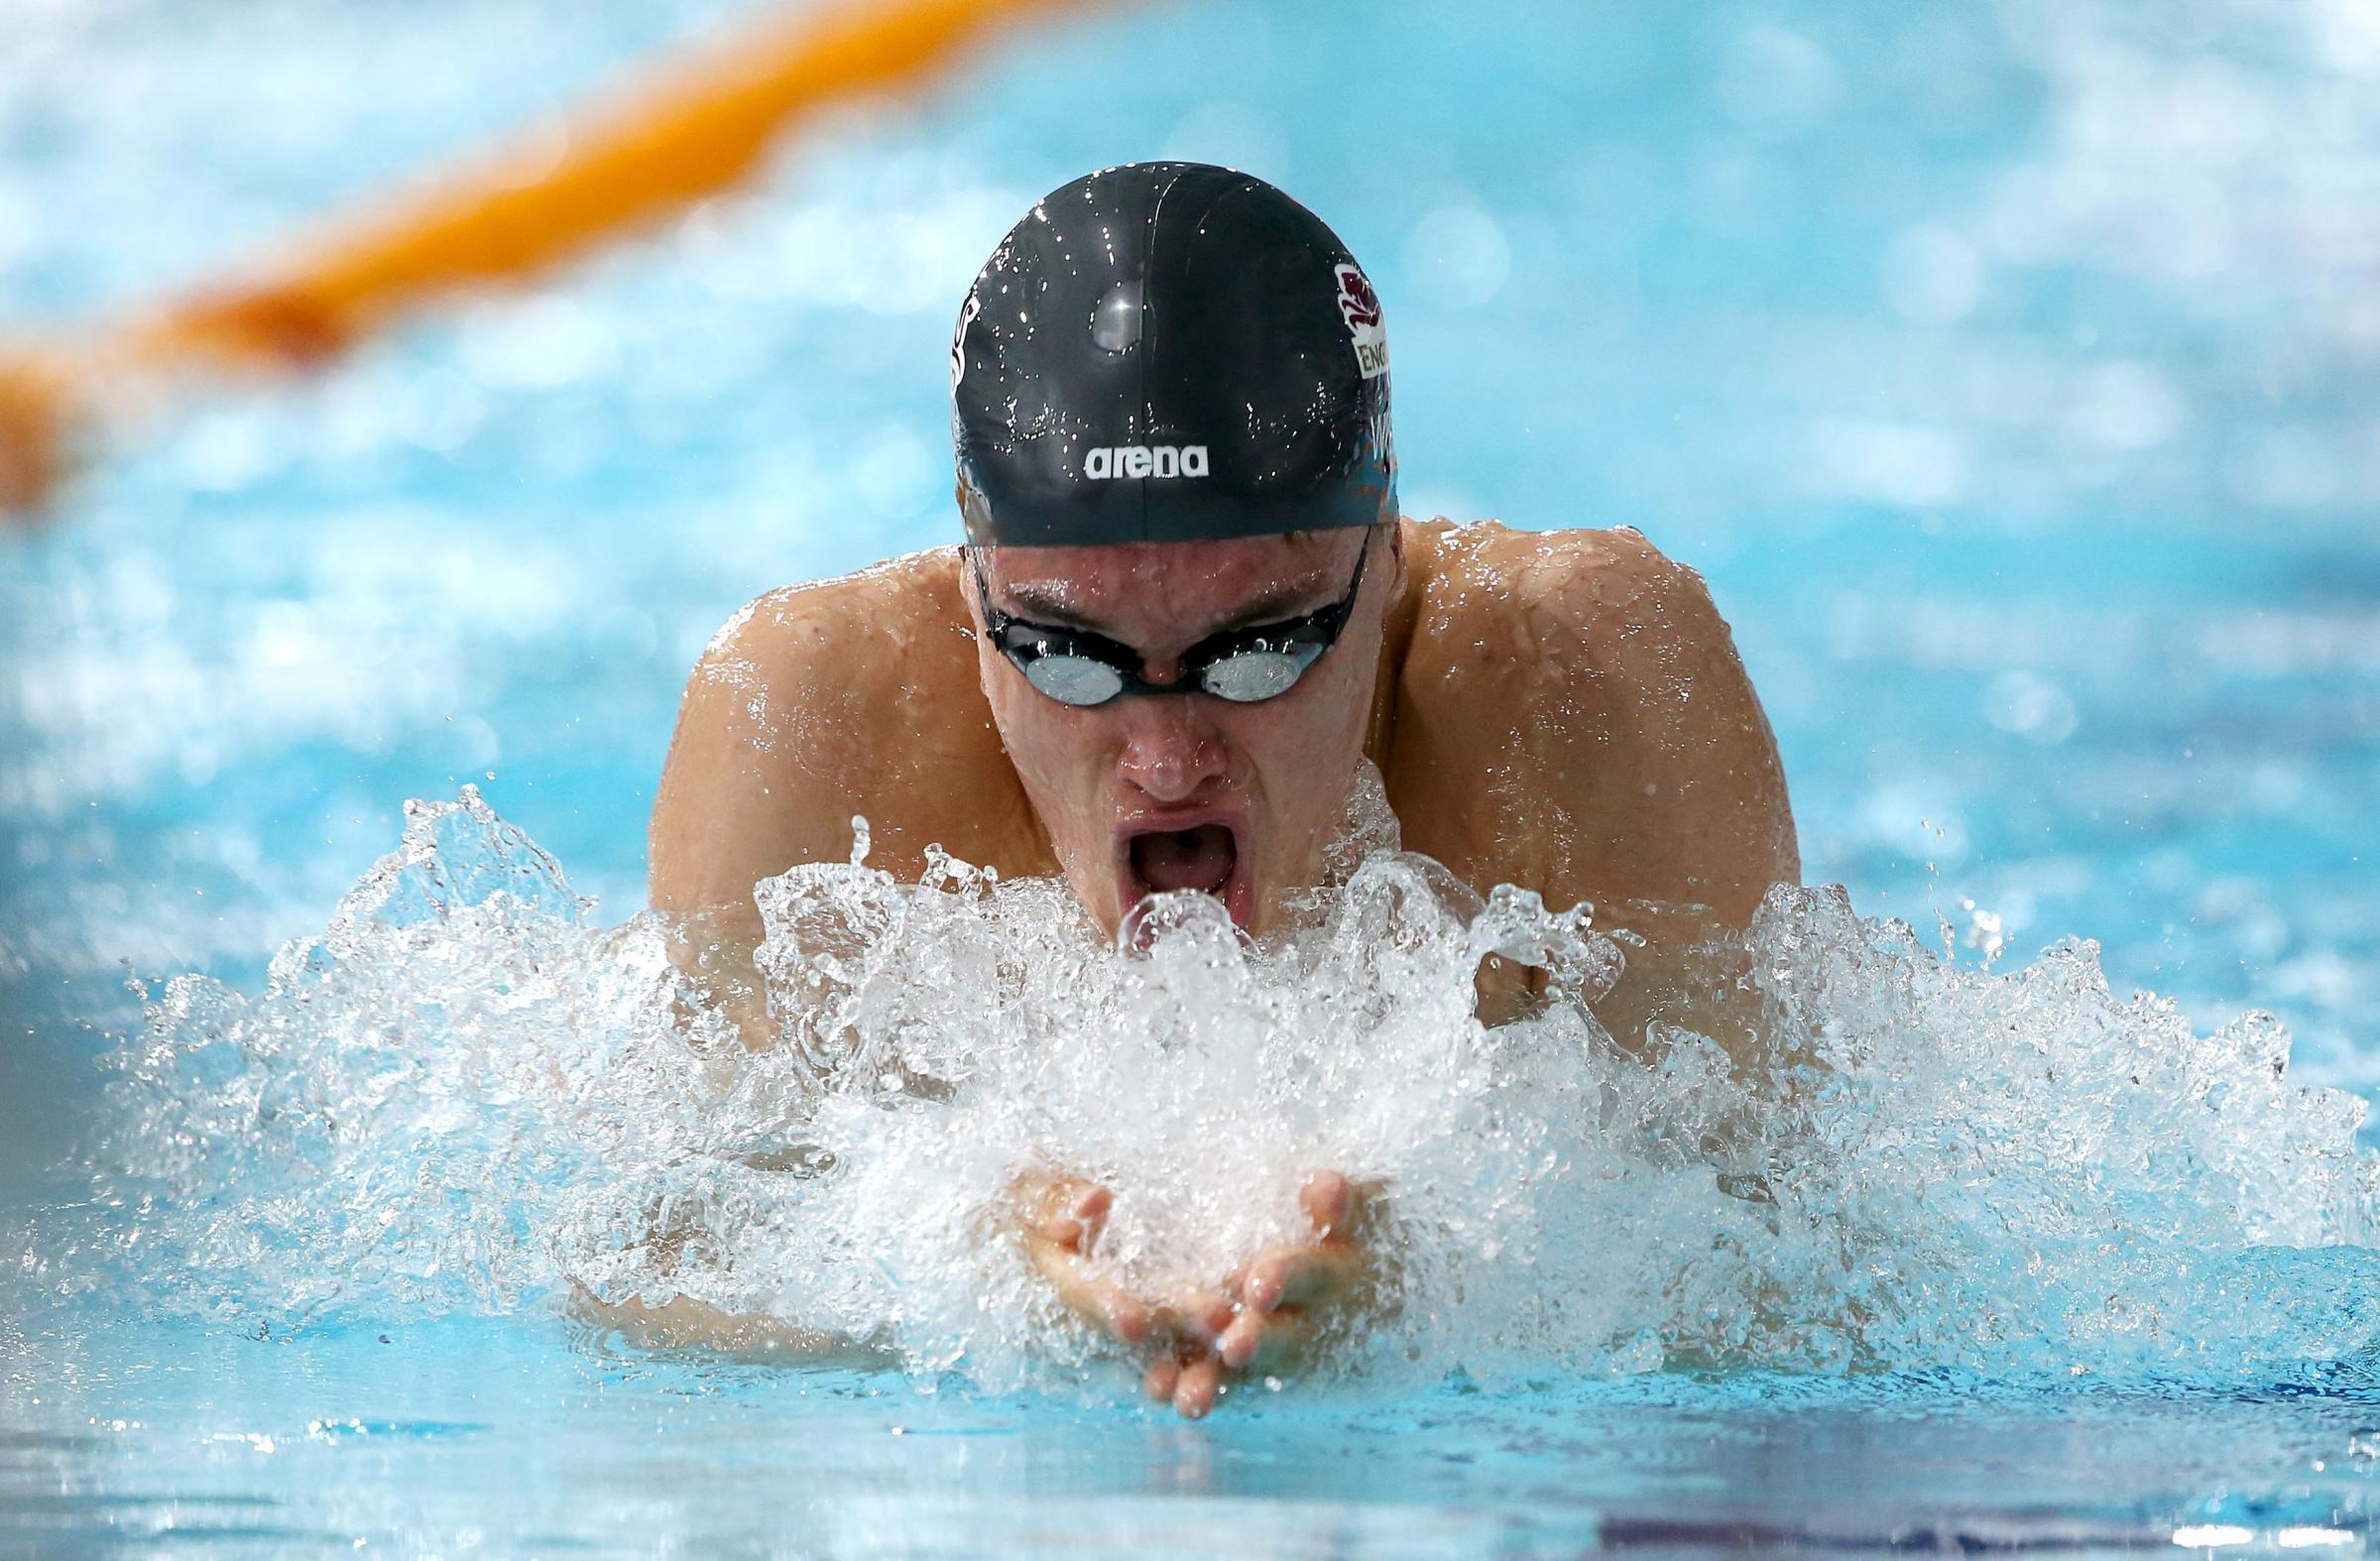 York and England swim star James Wilby, who is heading to the Gold Coast Commonwealth Games in April